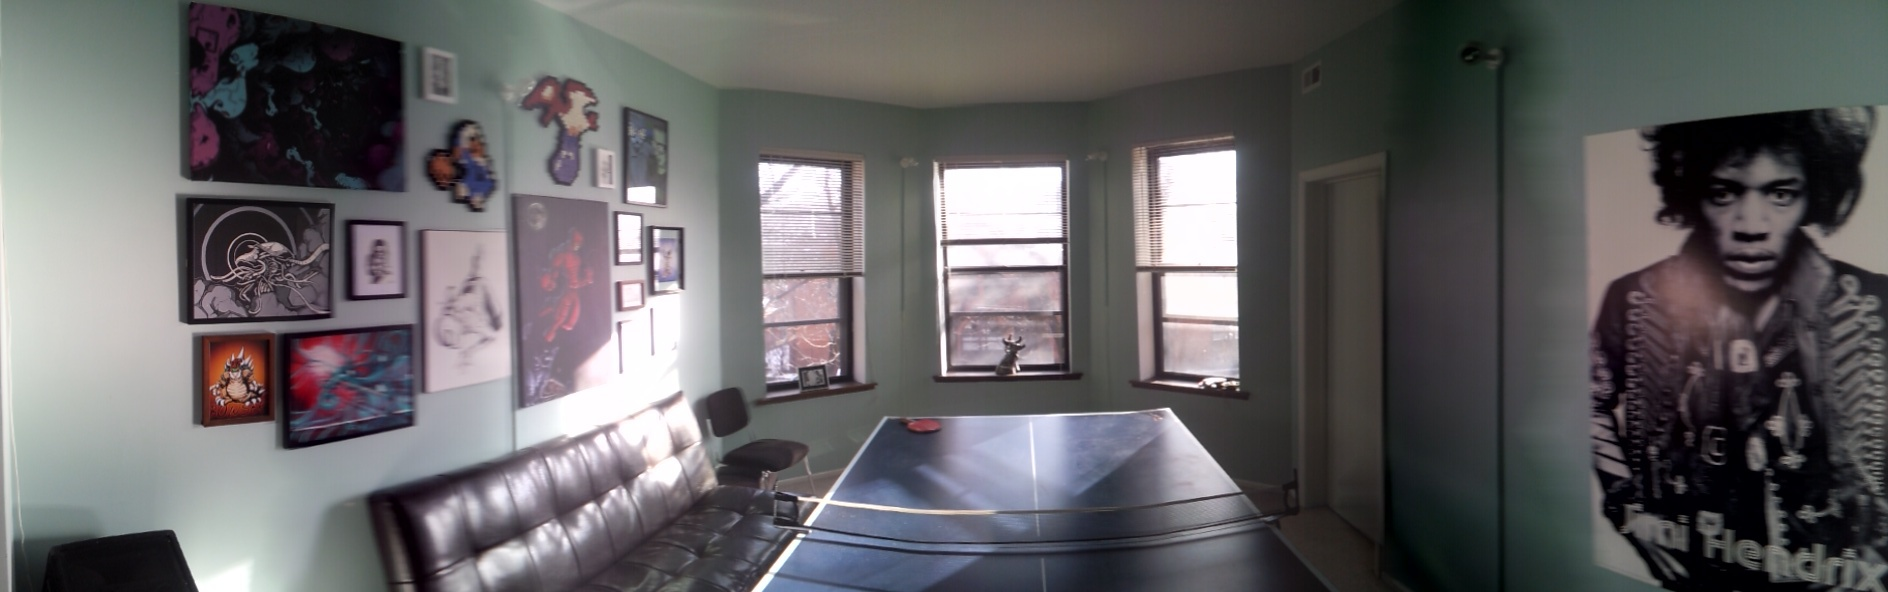 ...the ping pong room...